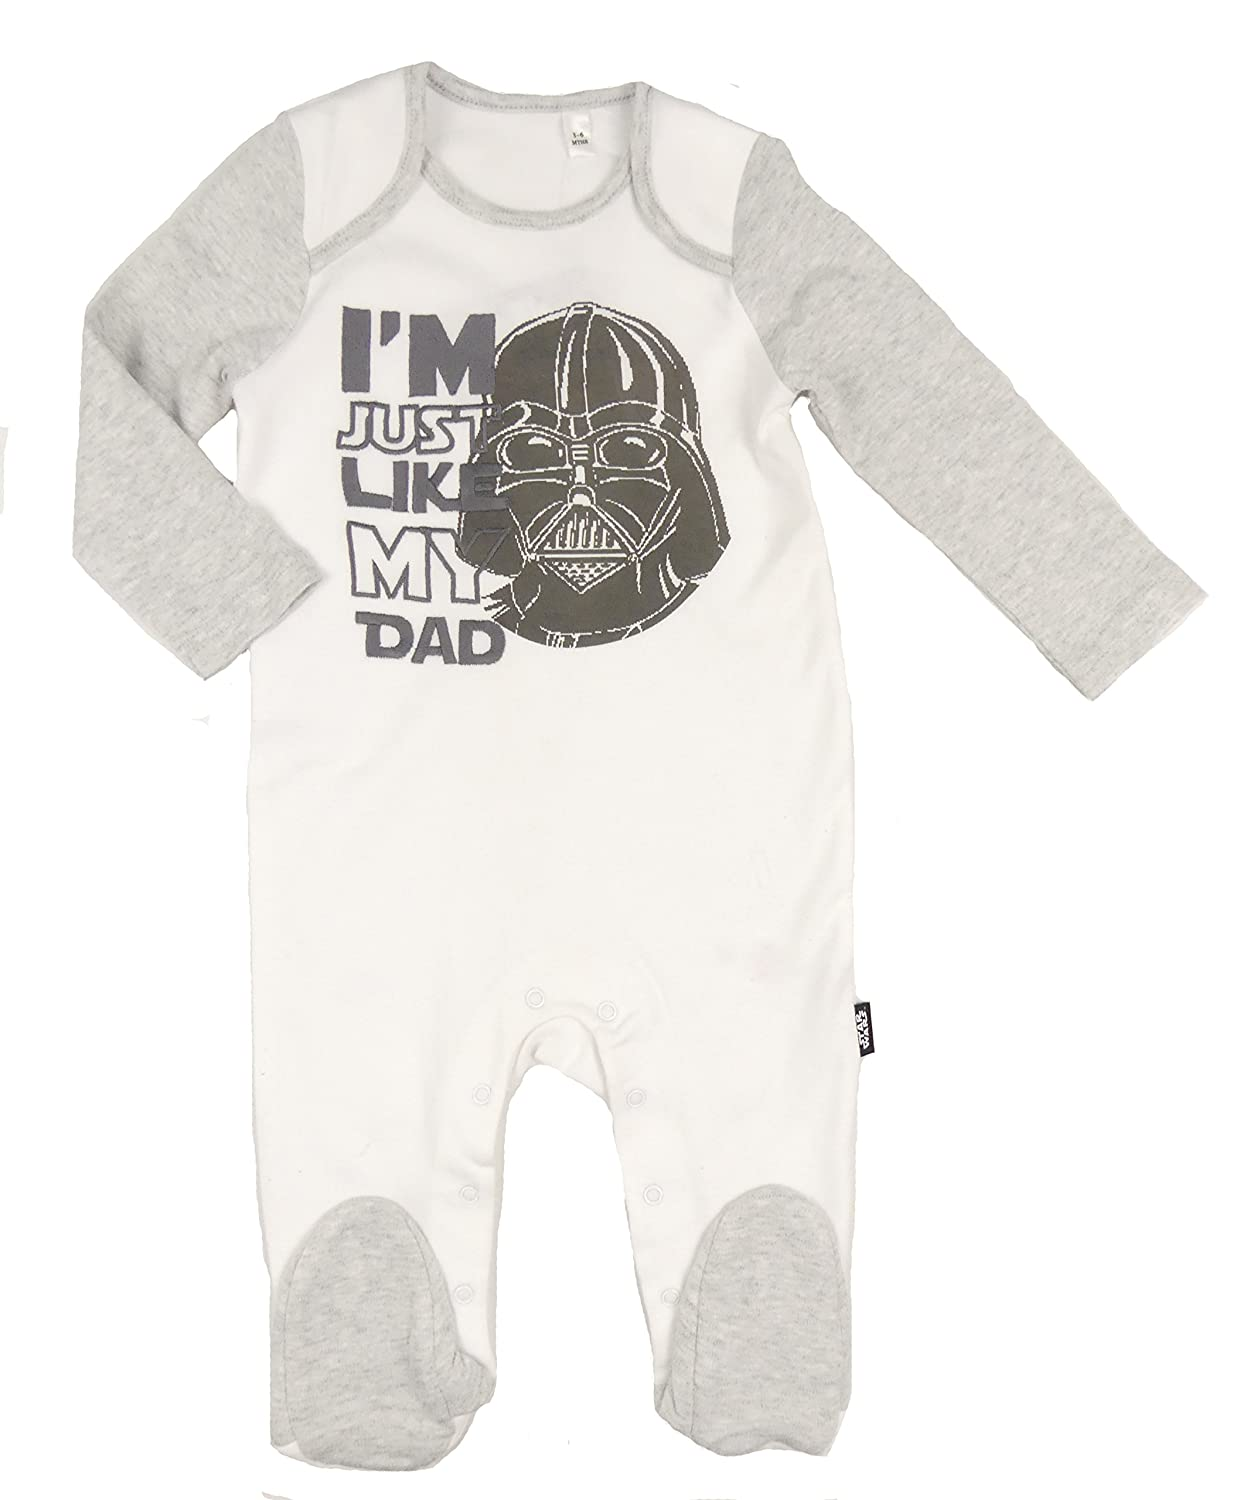 BHS Star Wars Darth Vader Sleepsuit Baby Grow Romper I am Just Like My Dad Theme